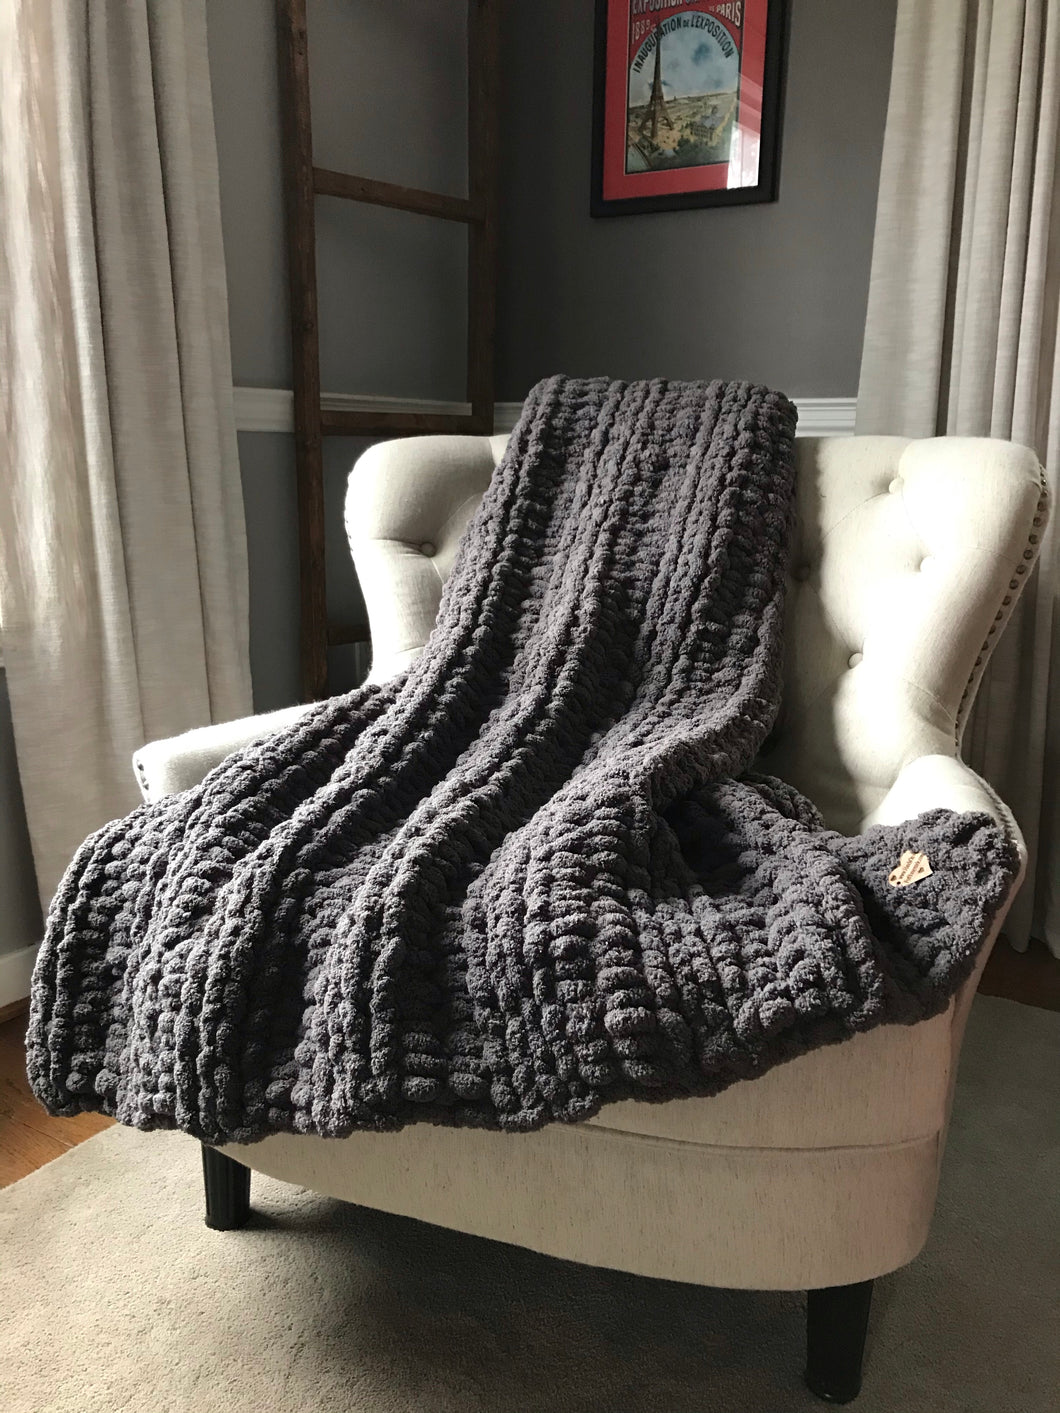 Soft Chunky Knit Charcoal Blanket - Hands On For Homemade